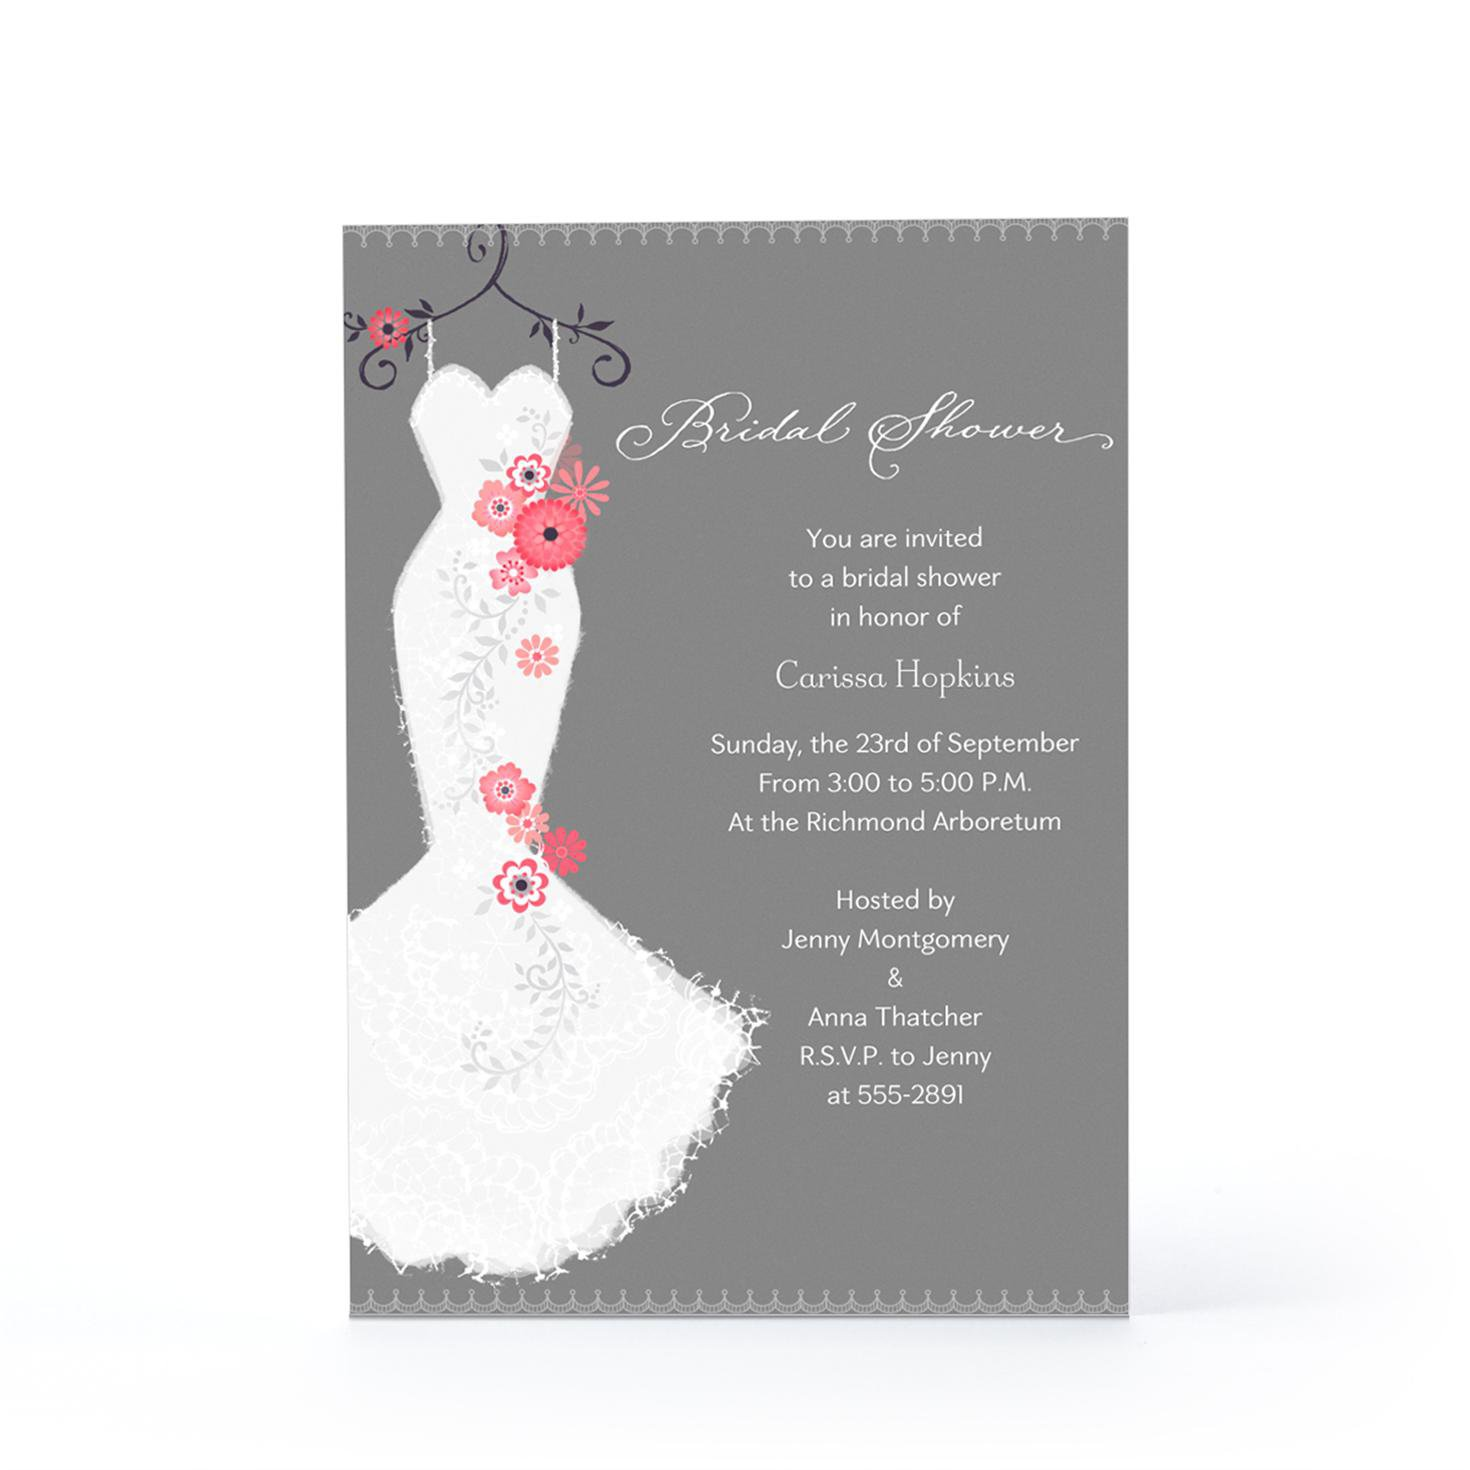 Hallmark Invitation Bridal Shower Free Orderecigsjuiceinfo - Hallmark party invitations templates